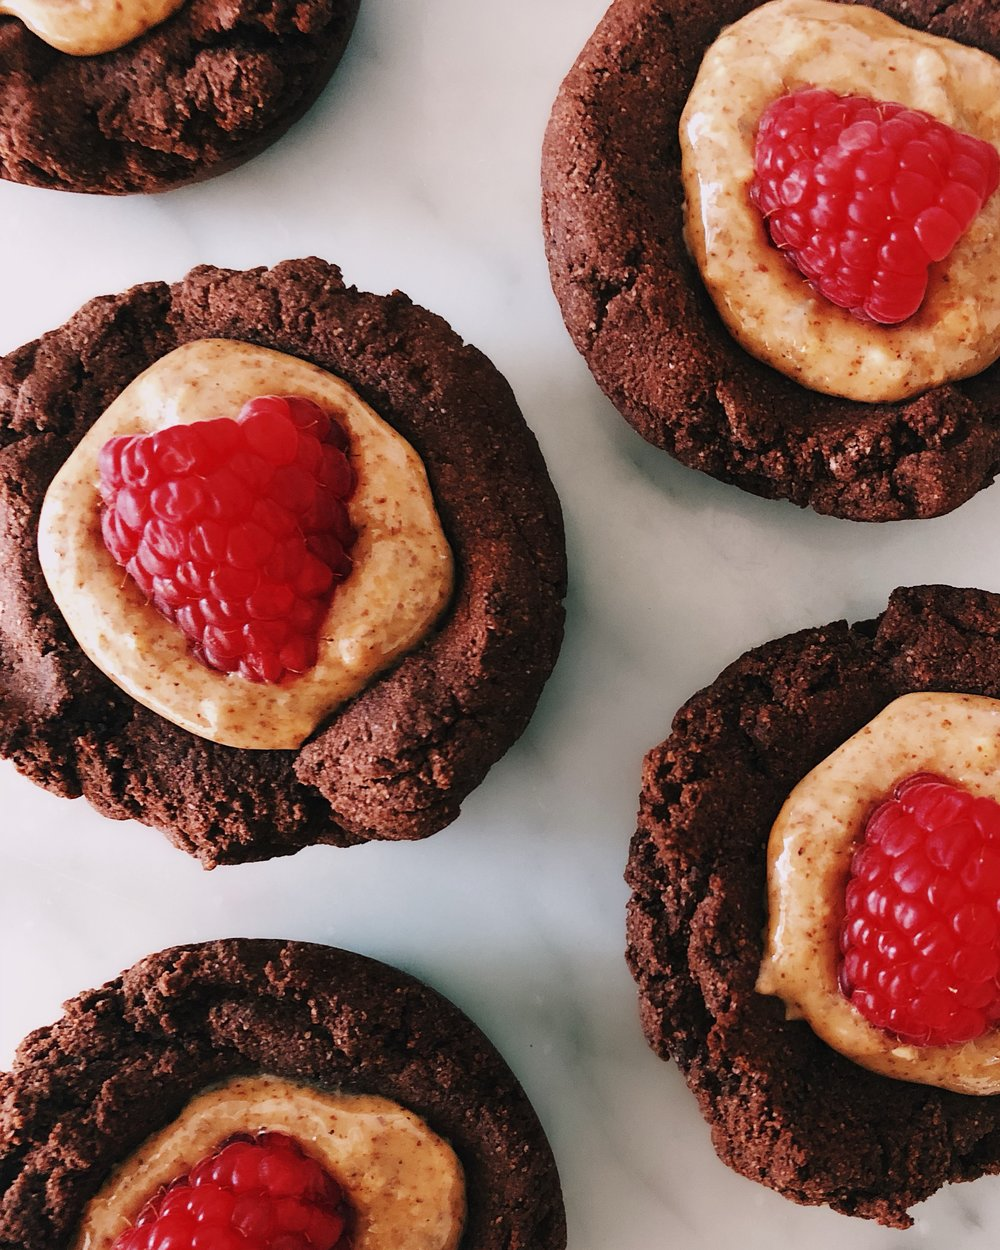 PALEO CHOCOLATE ALMOND BUTTER BITES - INGREDIENTSTHE BASE:1/2 cup cocoa powder1 1/4 cups coconut flour1 cup coconut oil, lightly melted3/4 cup maple syrup1/2 tsp salt1/8 tsp cinnamon (optional)FILLING:1/2 cup almond buttertoppings you desire, such as fresh raspberries!